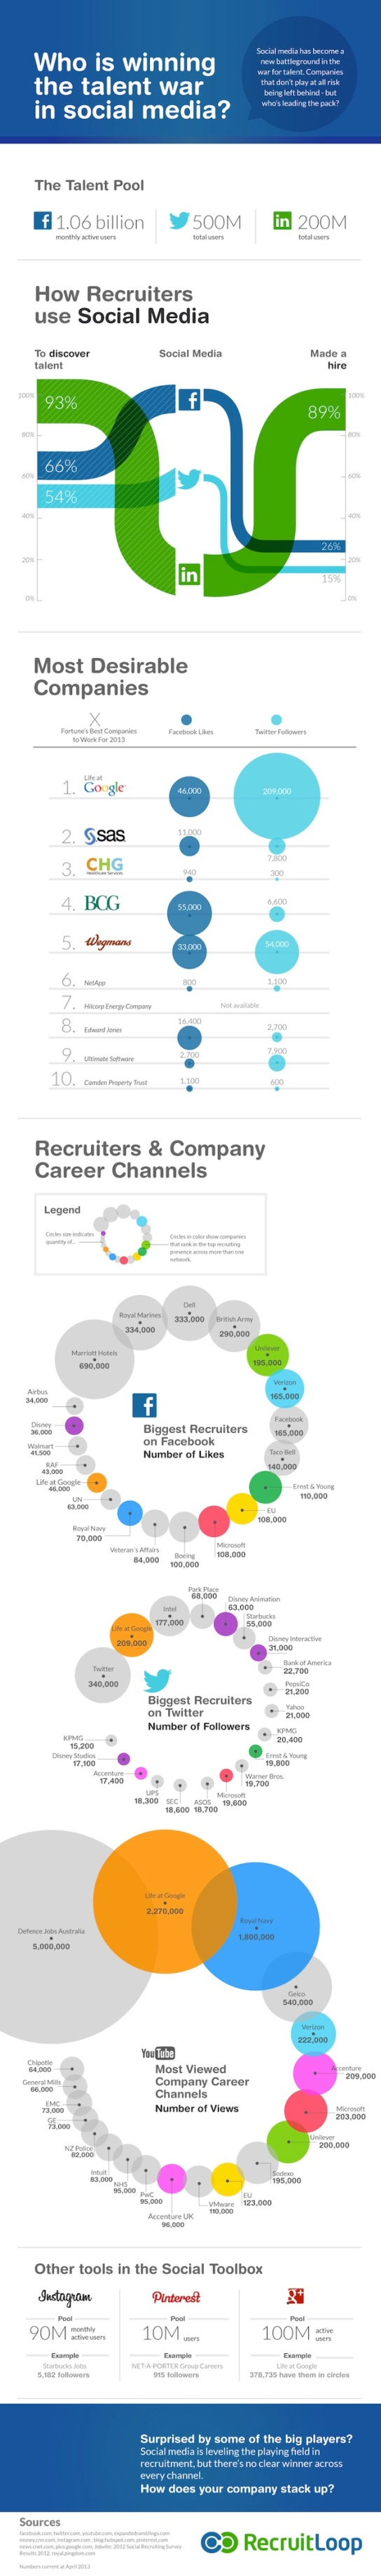 Whos-winning-the-talent-war-in-social-media-RecruitLoop